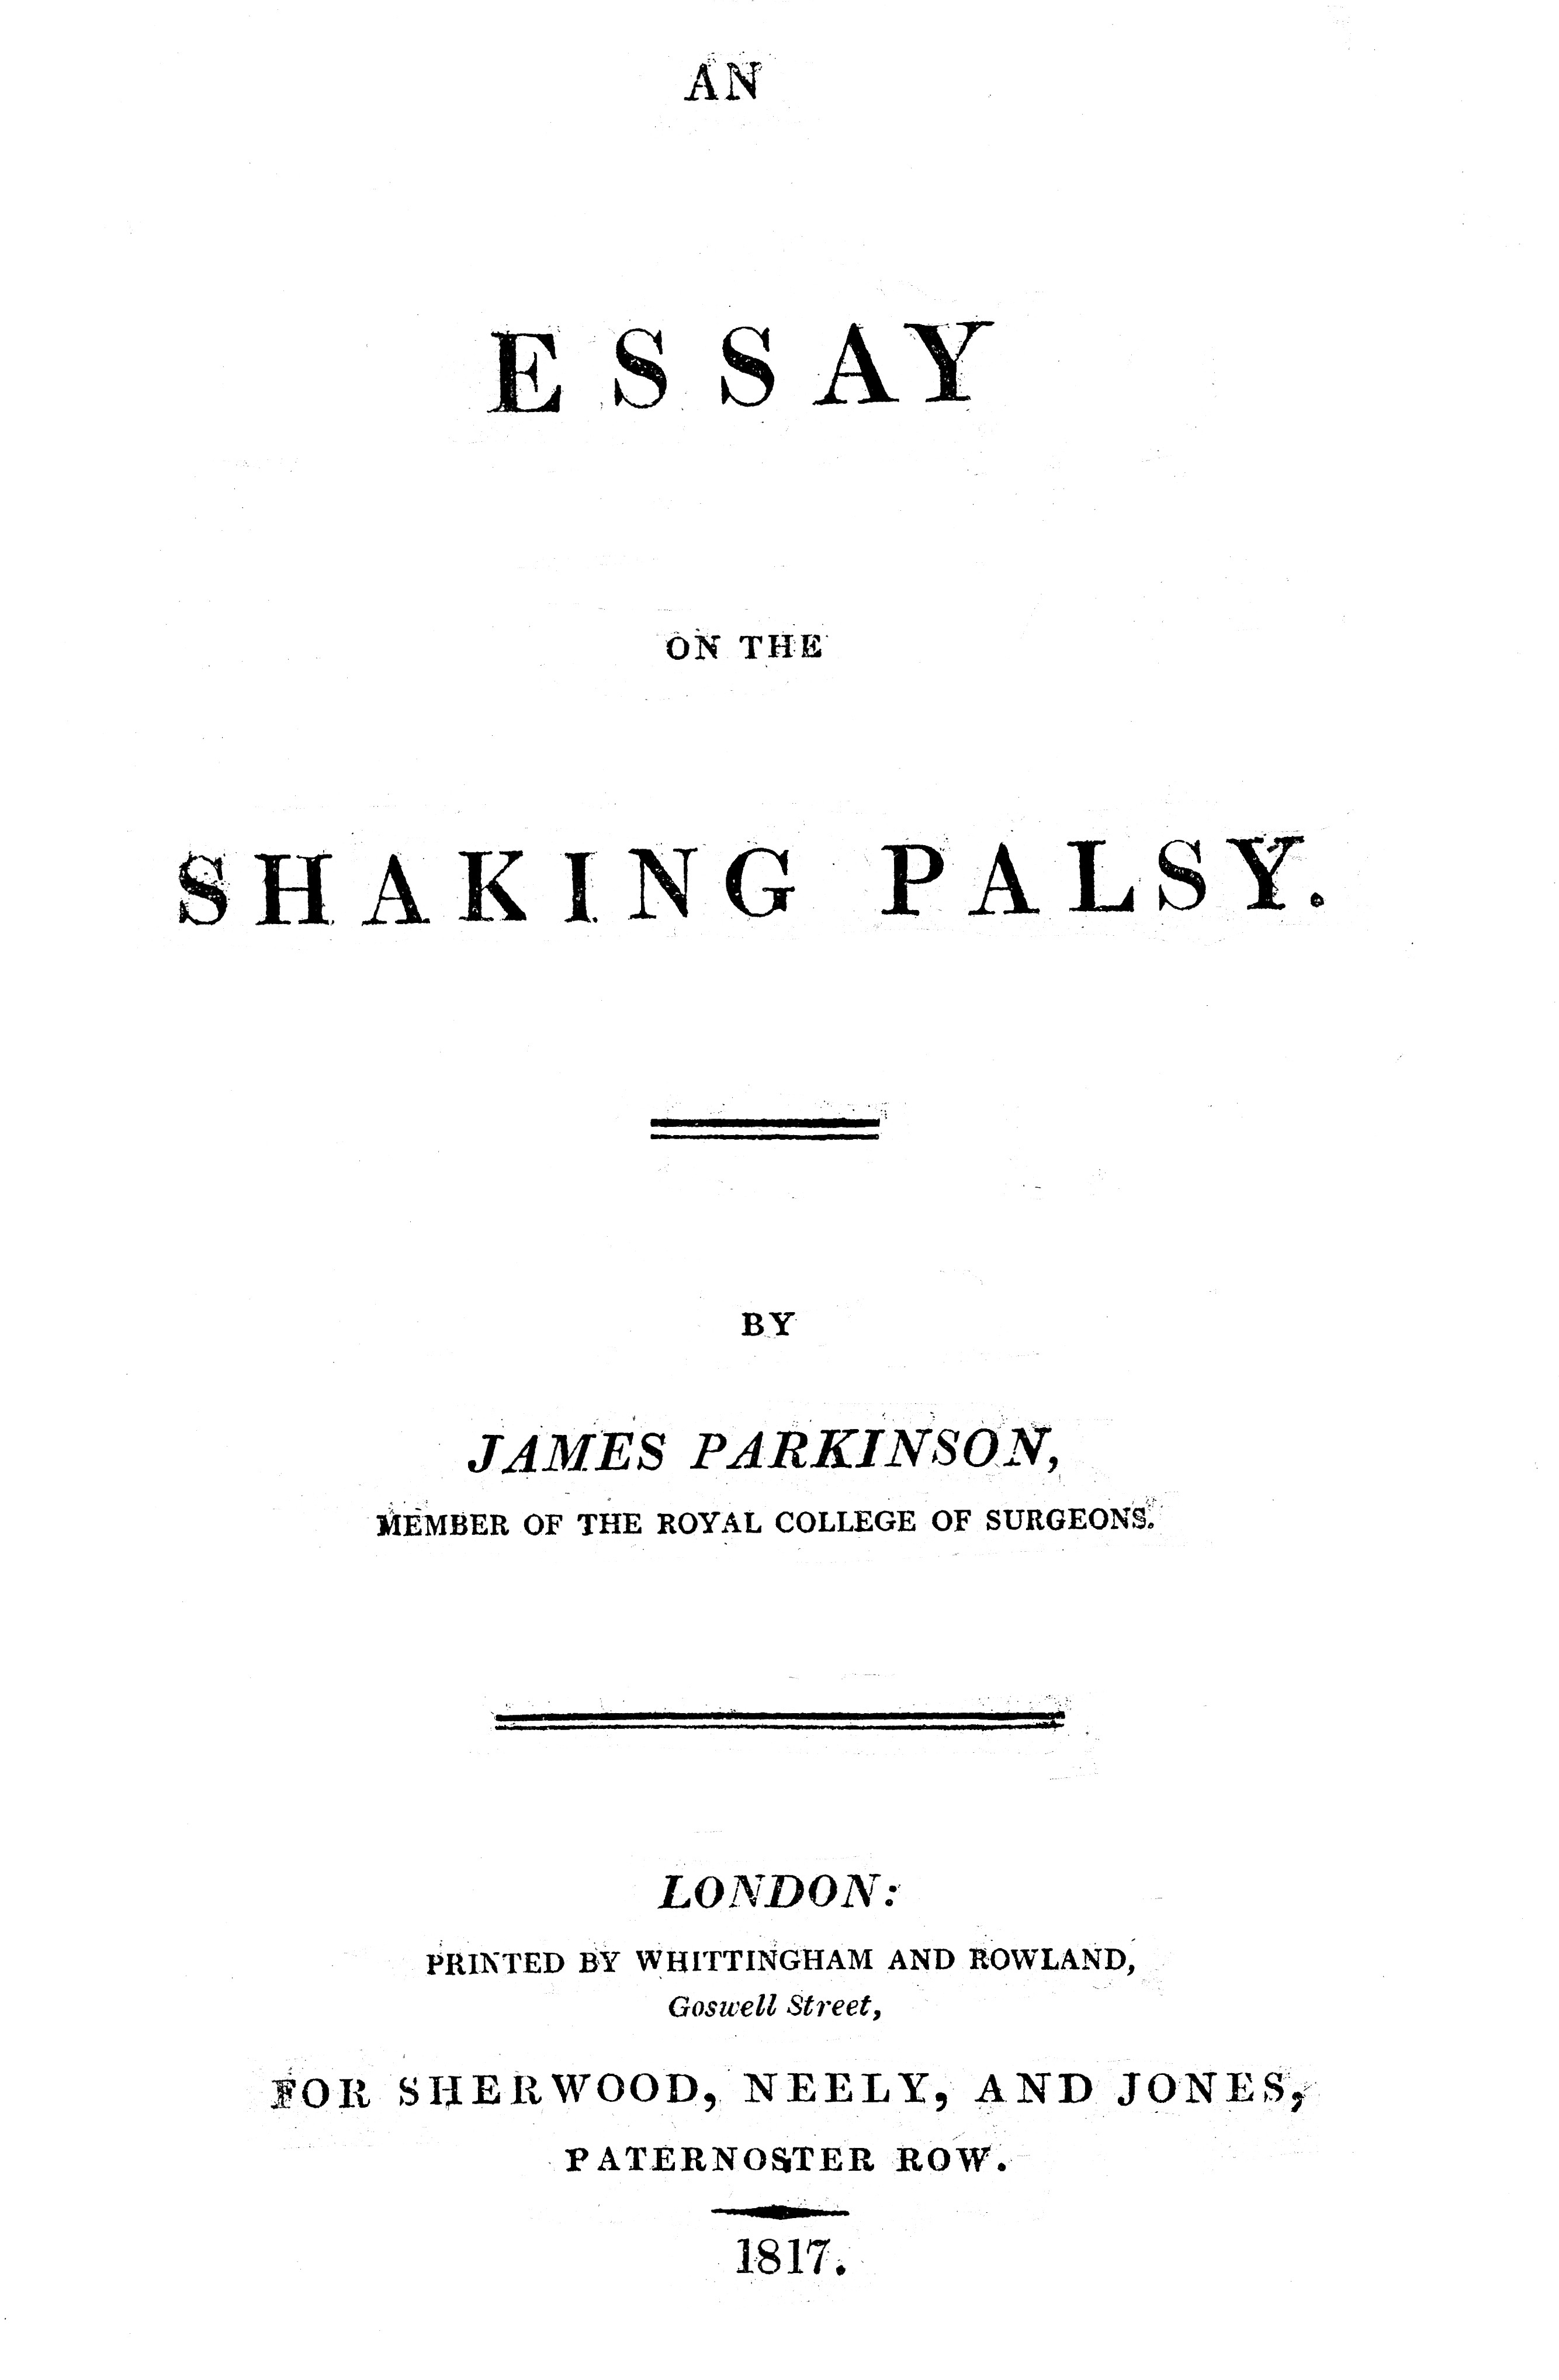 parkinson j. an essay on the shaking palsy